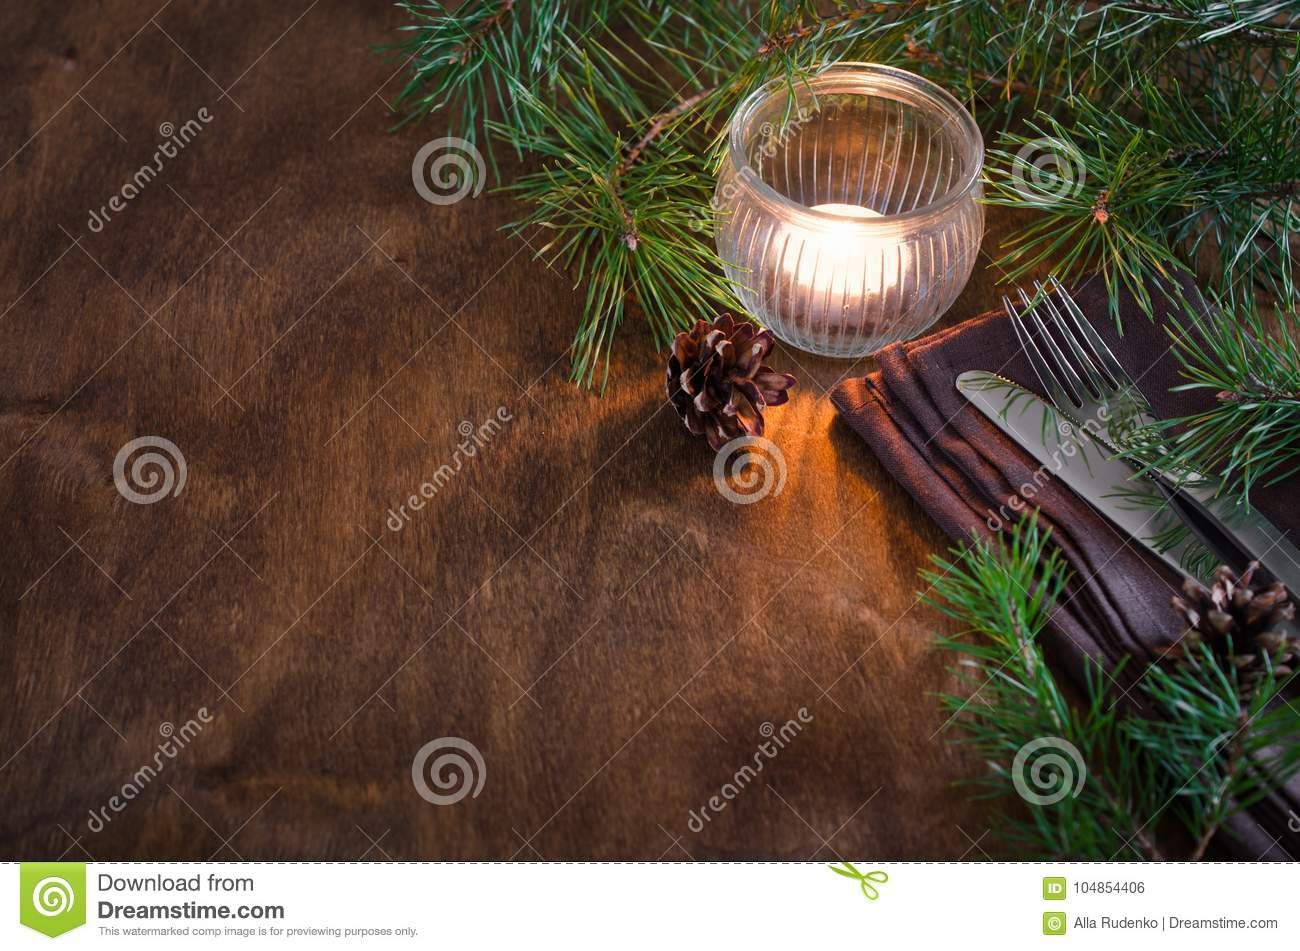 Rustic Christmas Table Setting With Candle Stock Photo Image Of Dishware Interior 104854406